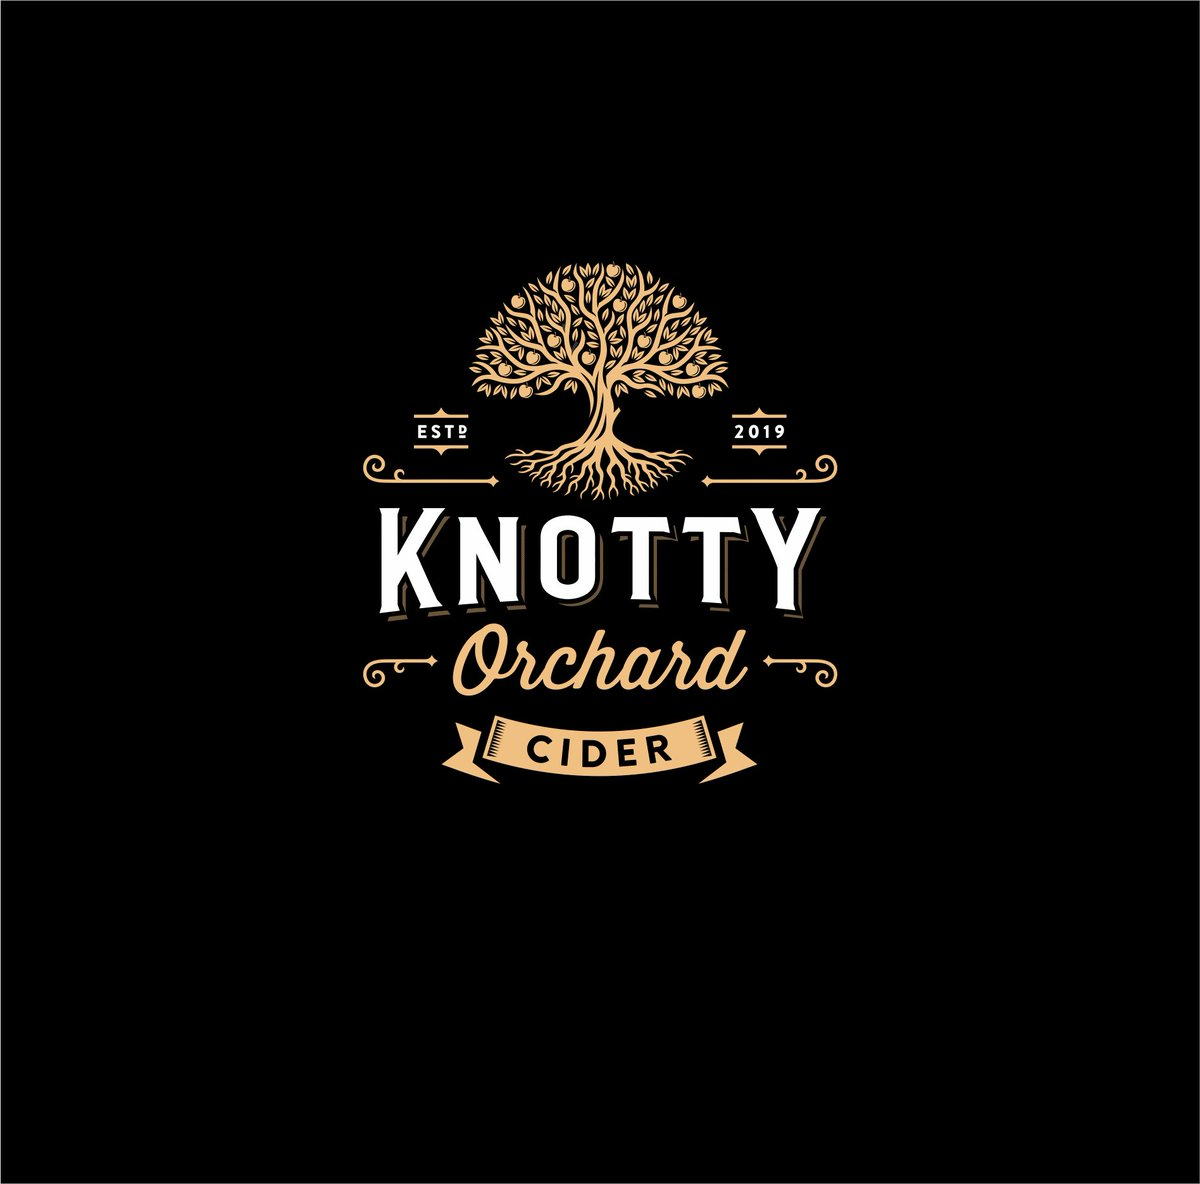 Knotty Orchard Cider Logo✨ . . . #_designer_planet #needlogo #design #needgraphics #needweb #businesscards #logomaker #logotype #graphicart #banners #infographic #wordpress #posterdesign #animationdesign #flyerdesign #brochuredesign #coverdesign #facebookcover #youtubecover https://t.co/ud4wsTEpGR